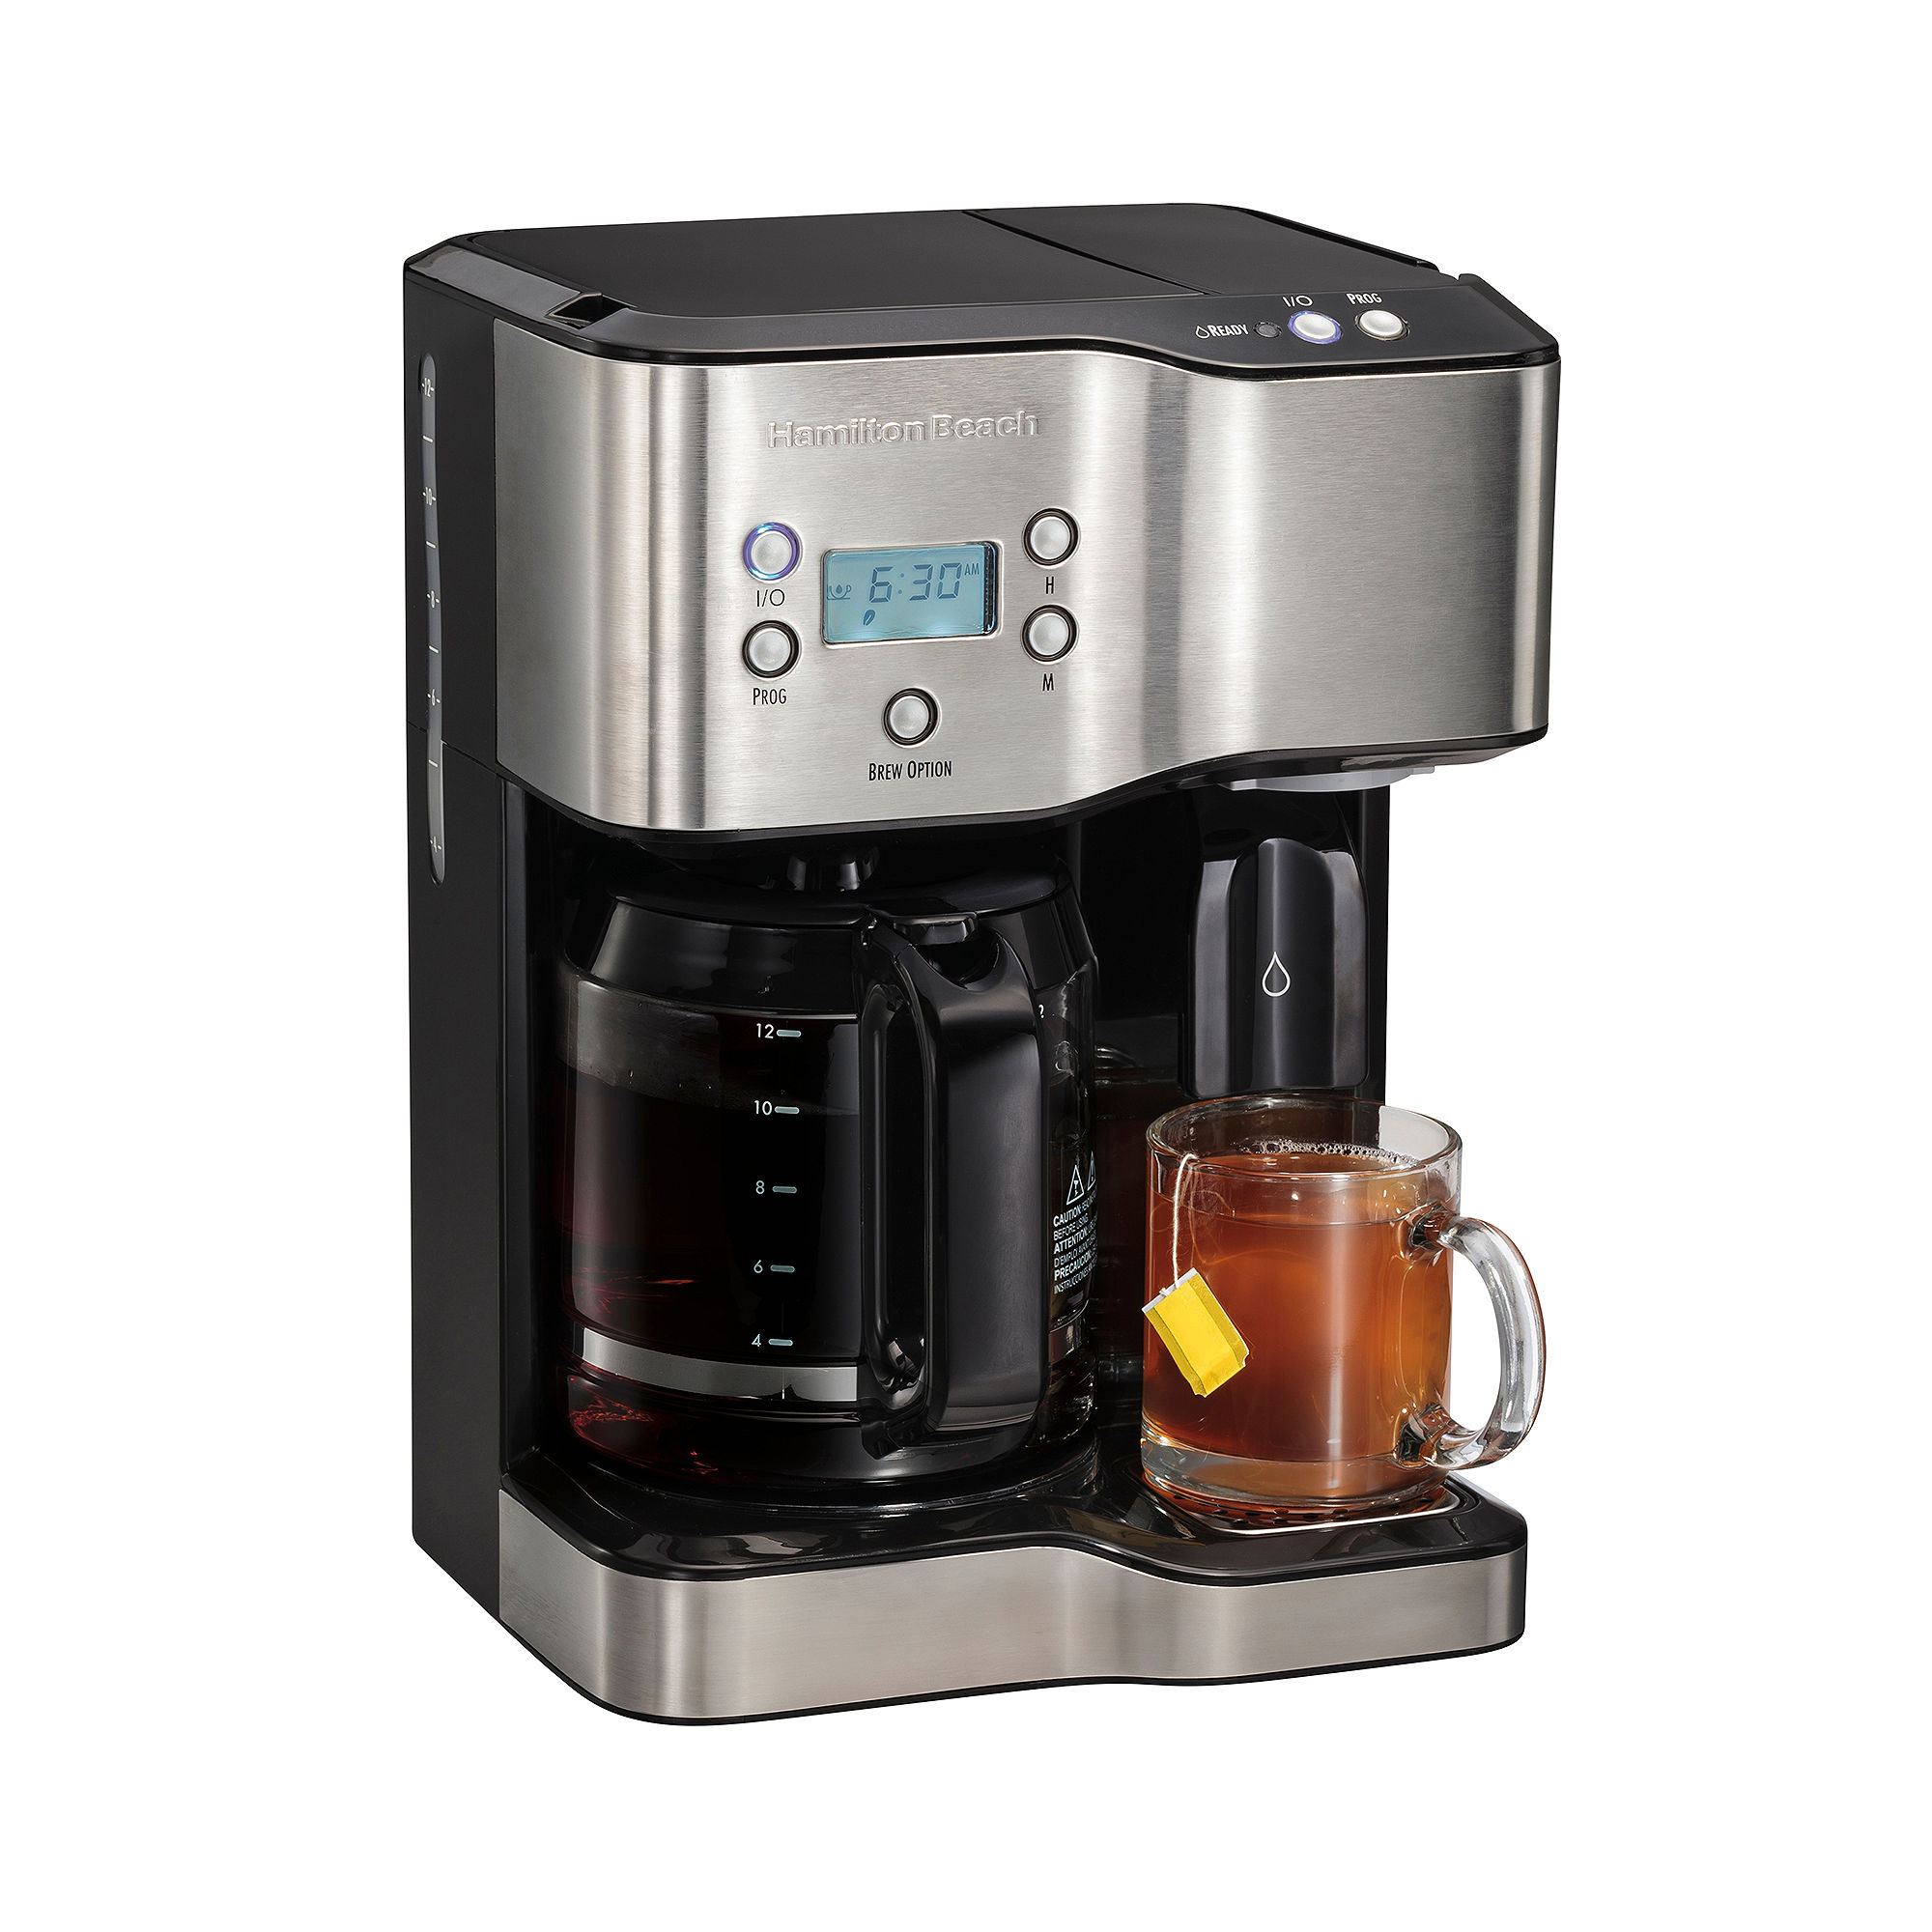 Bunn Coffee Maker Bunn Coffee Maker Link 136 Wsource Pdf